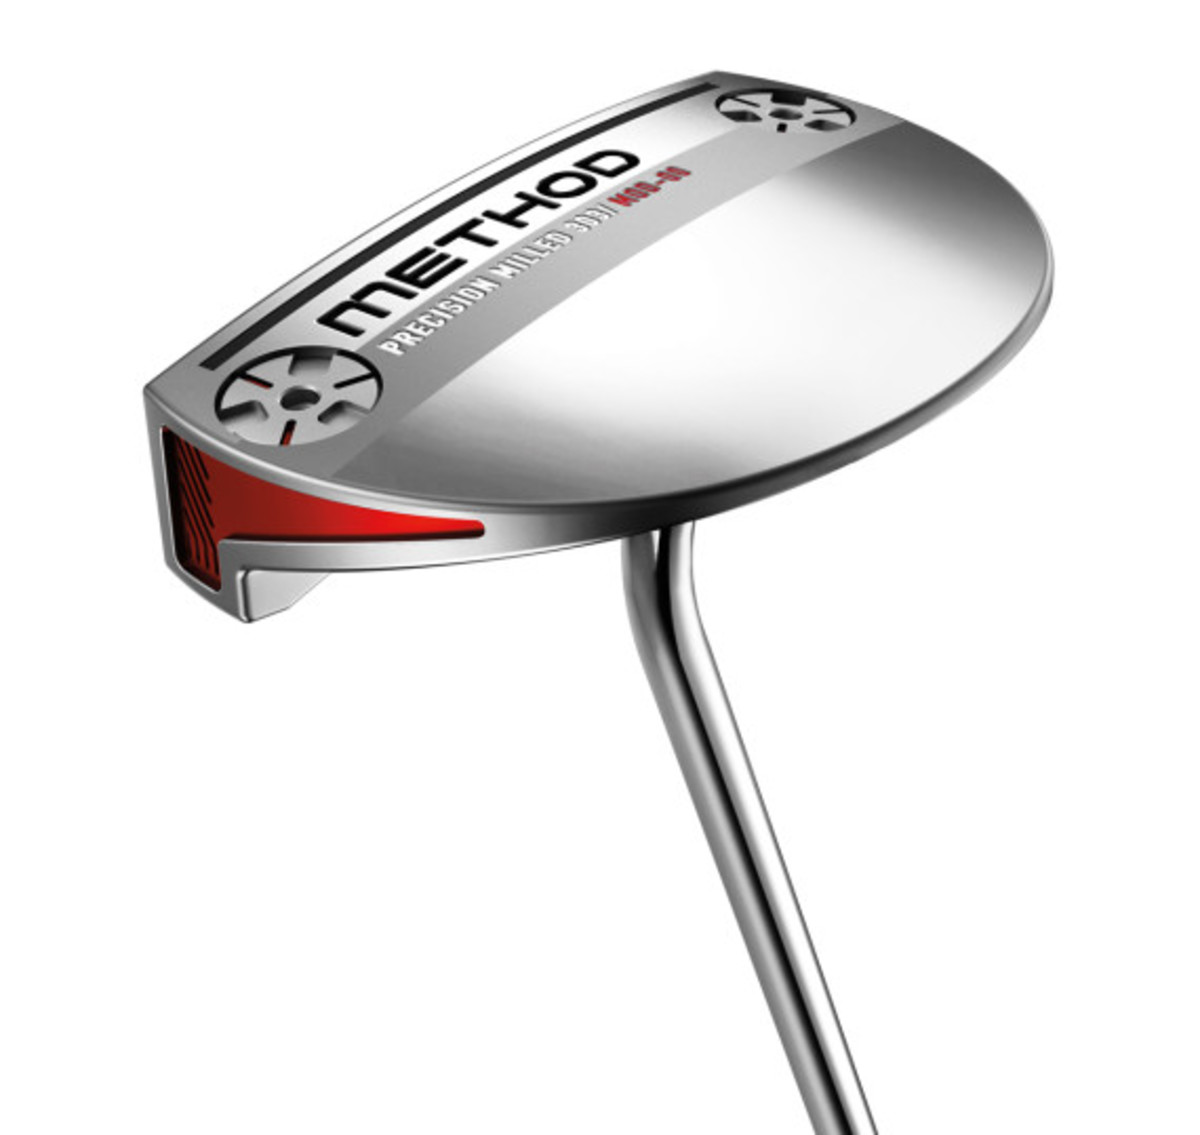 nike-golf-introduces-method-mod-putters-03